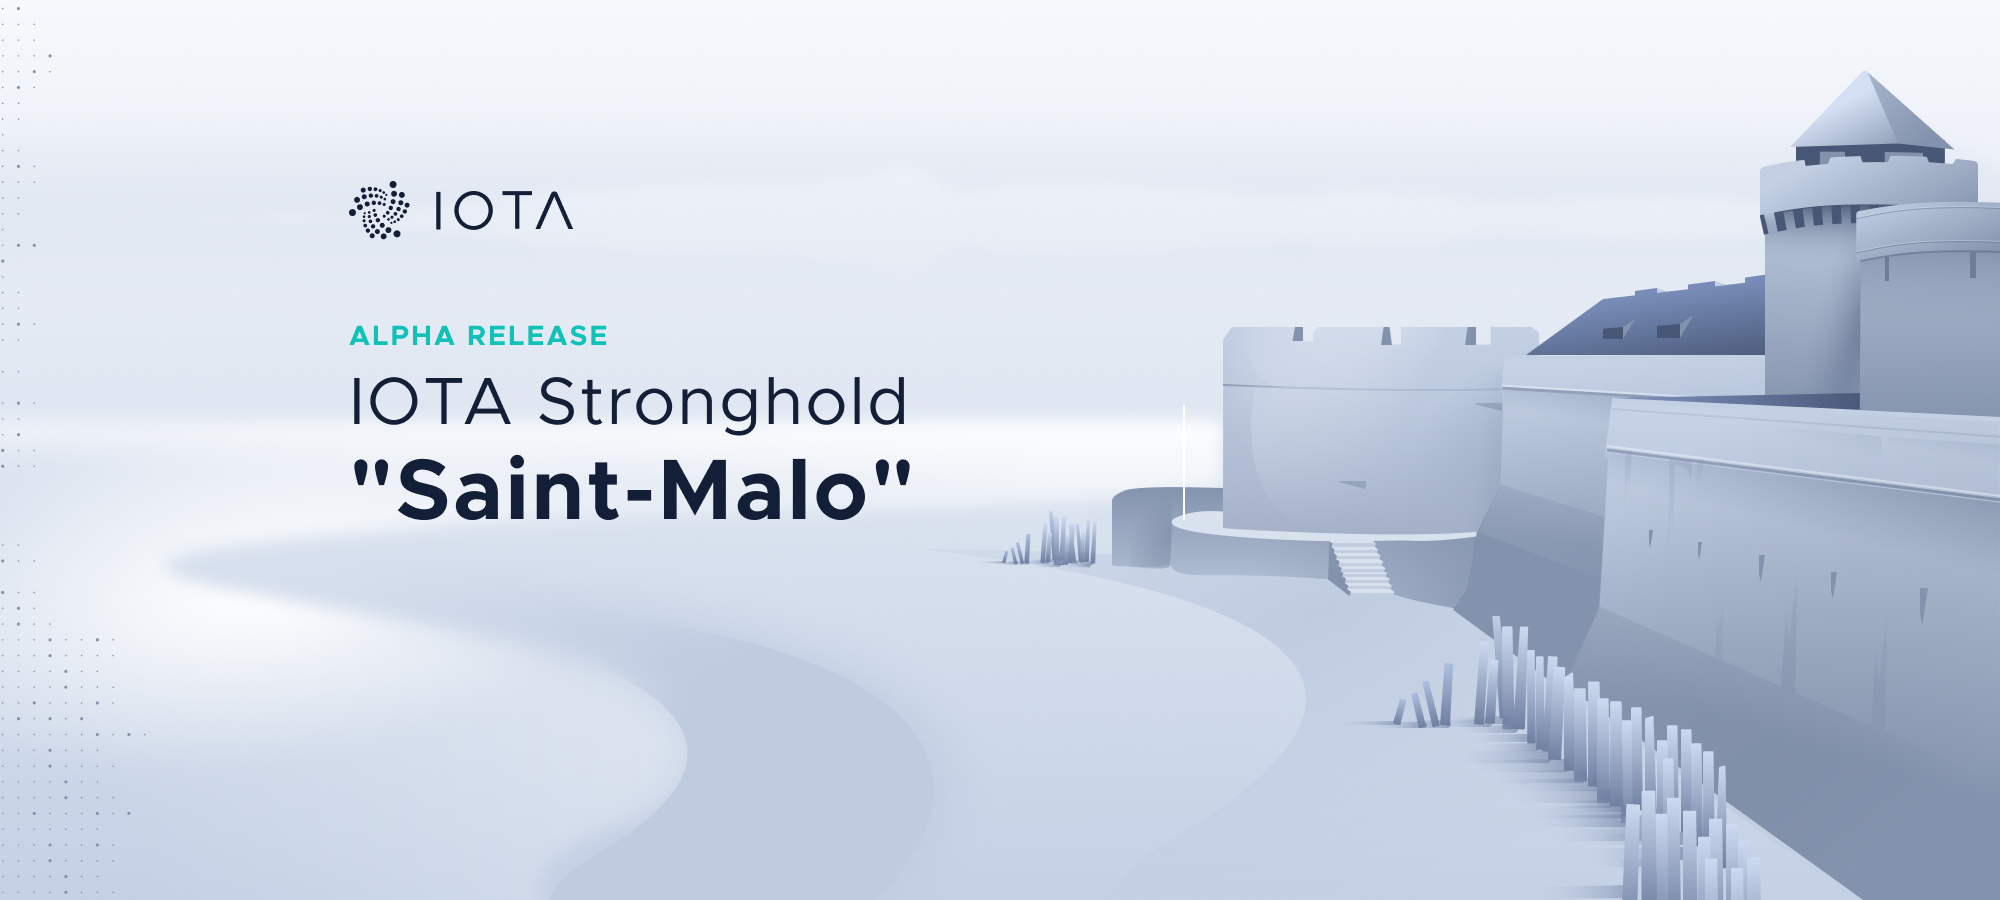 IOTA Stronghold Alpha Release